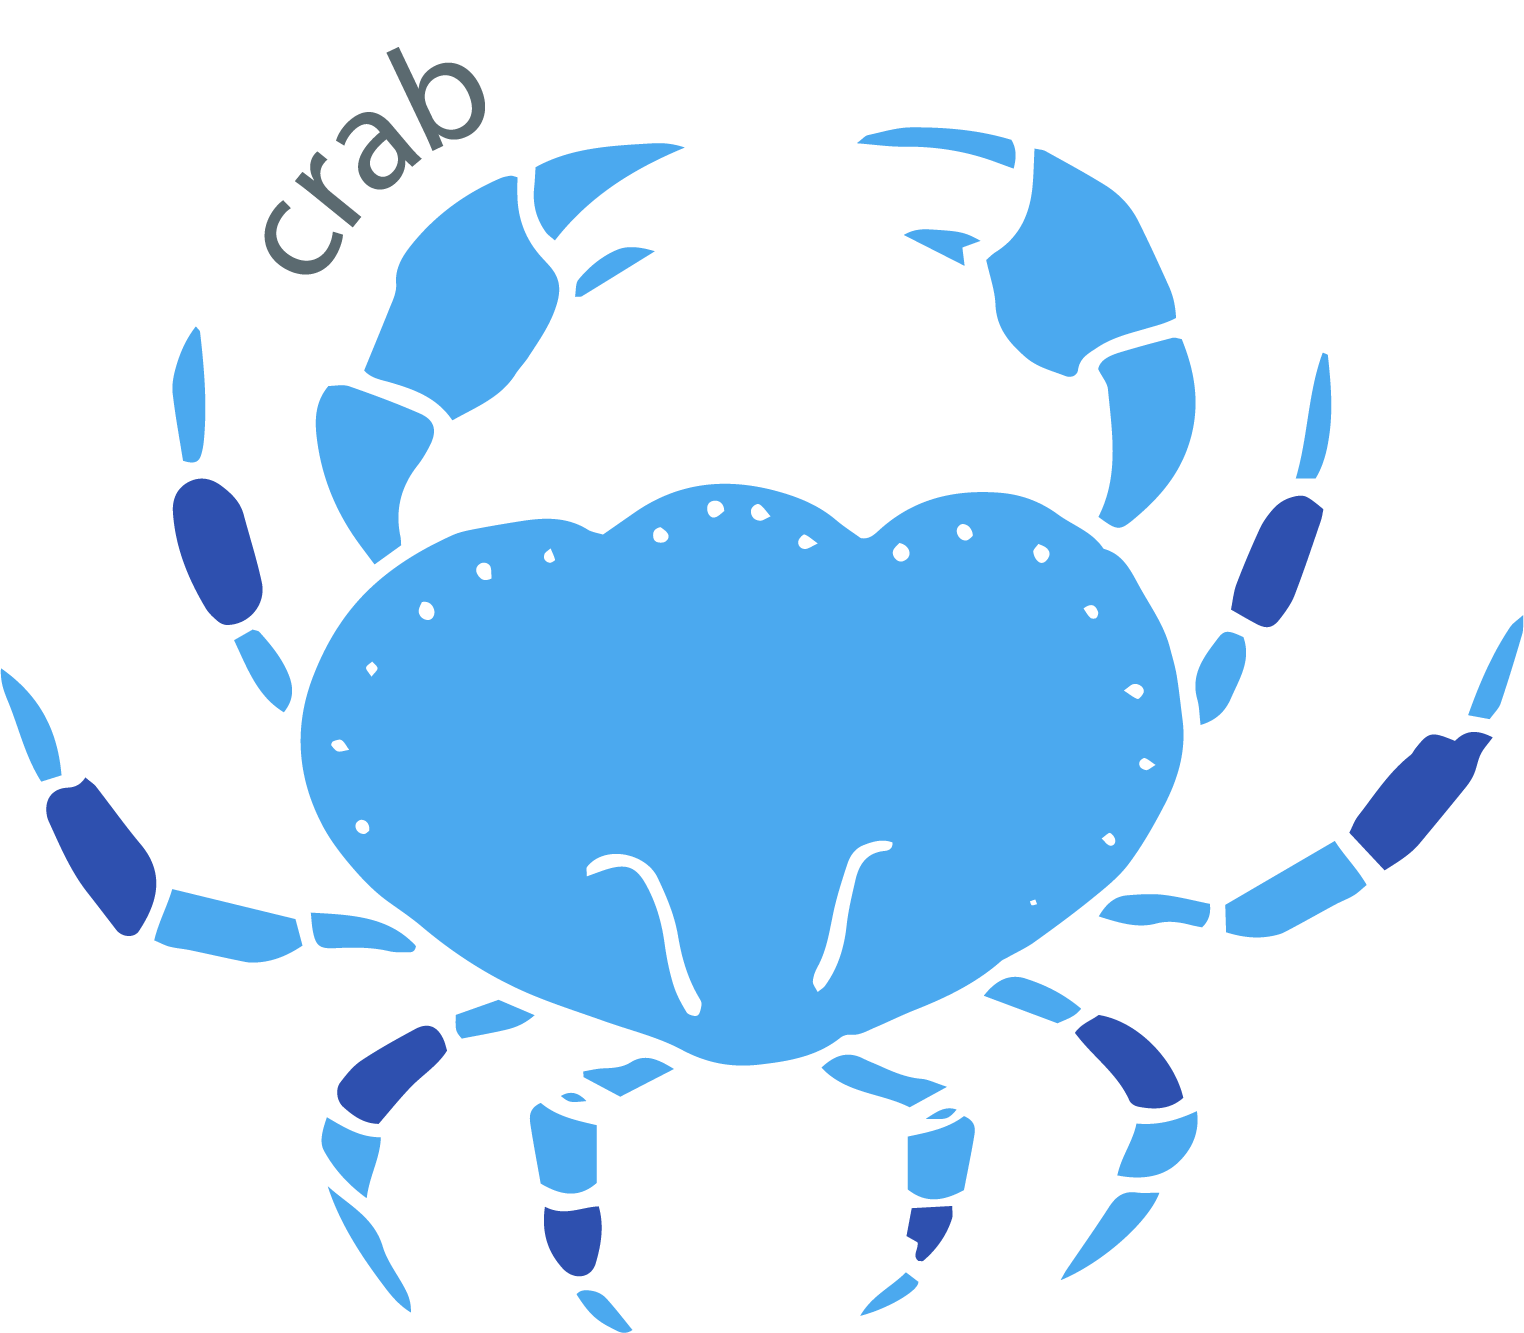 Seafood crab meat